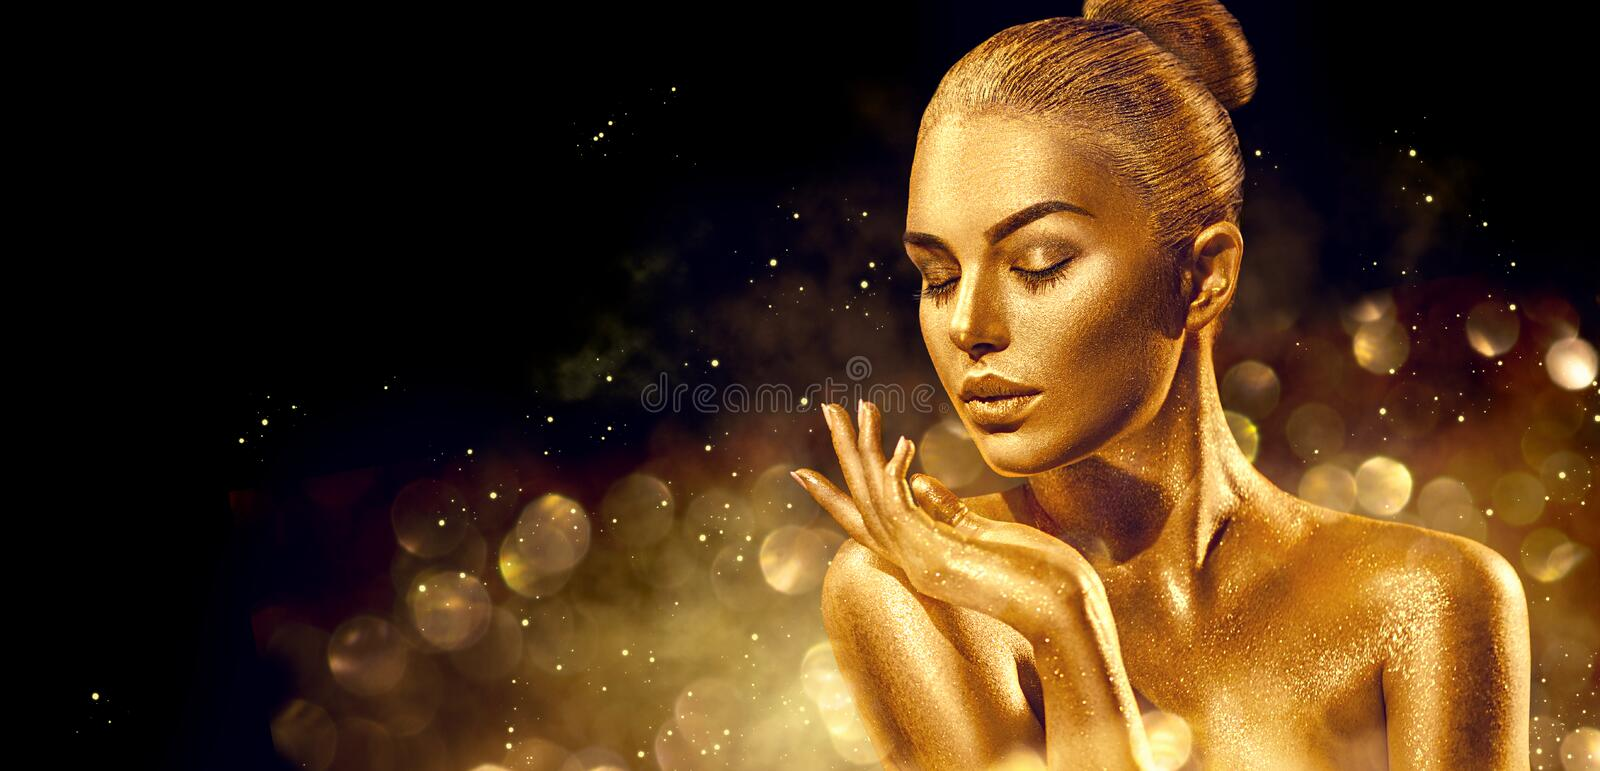 Christmas woman. Golden skin woman portrait closeup. model girl with holiday golden shiny professional makeup. Golden metallic body royalty free stock photo